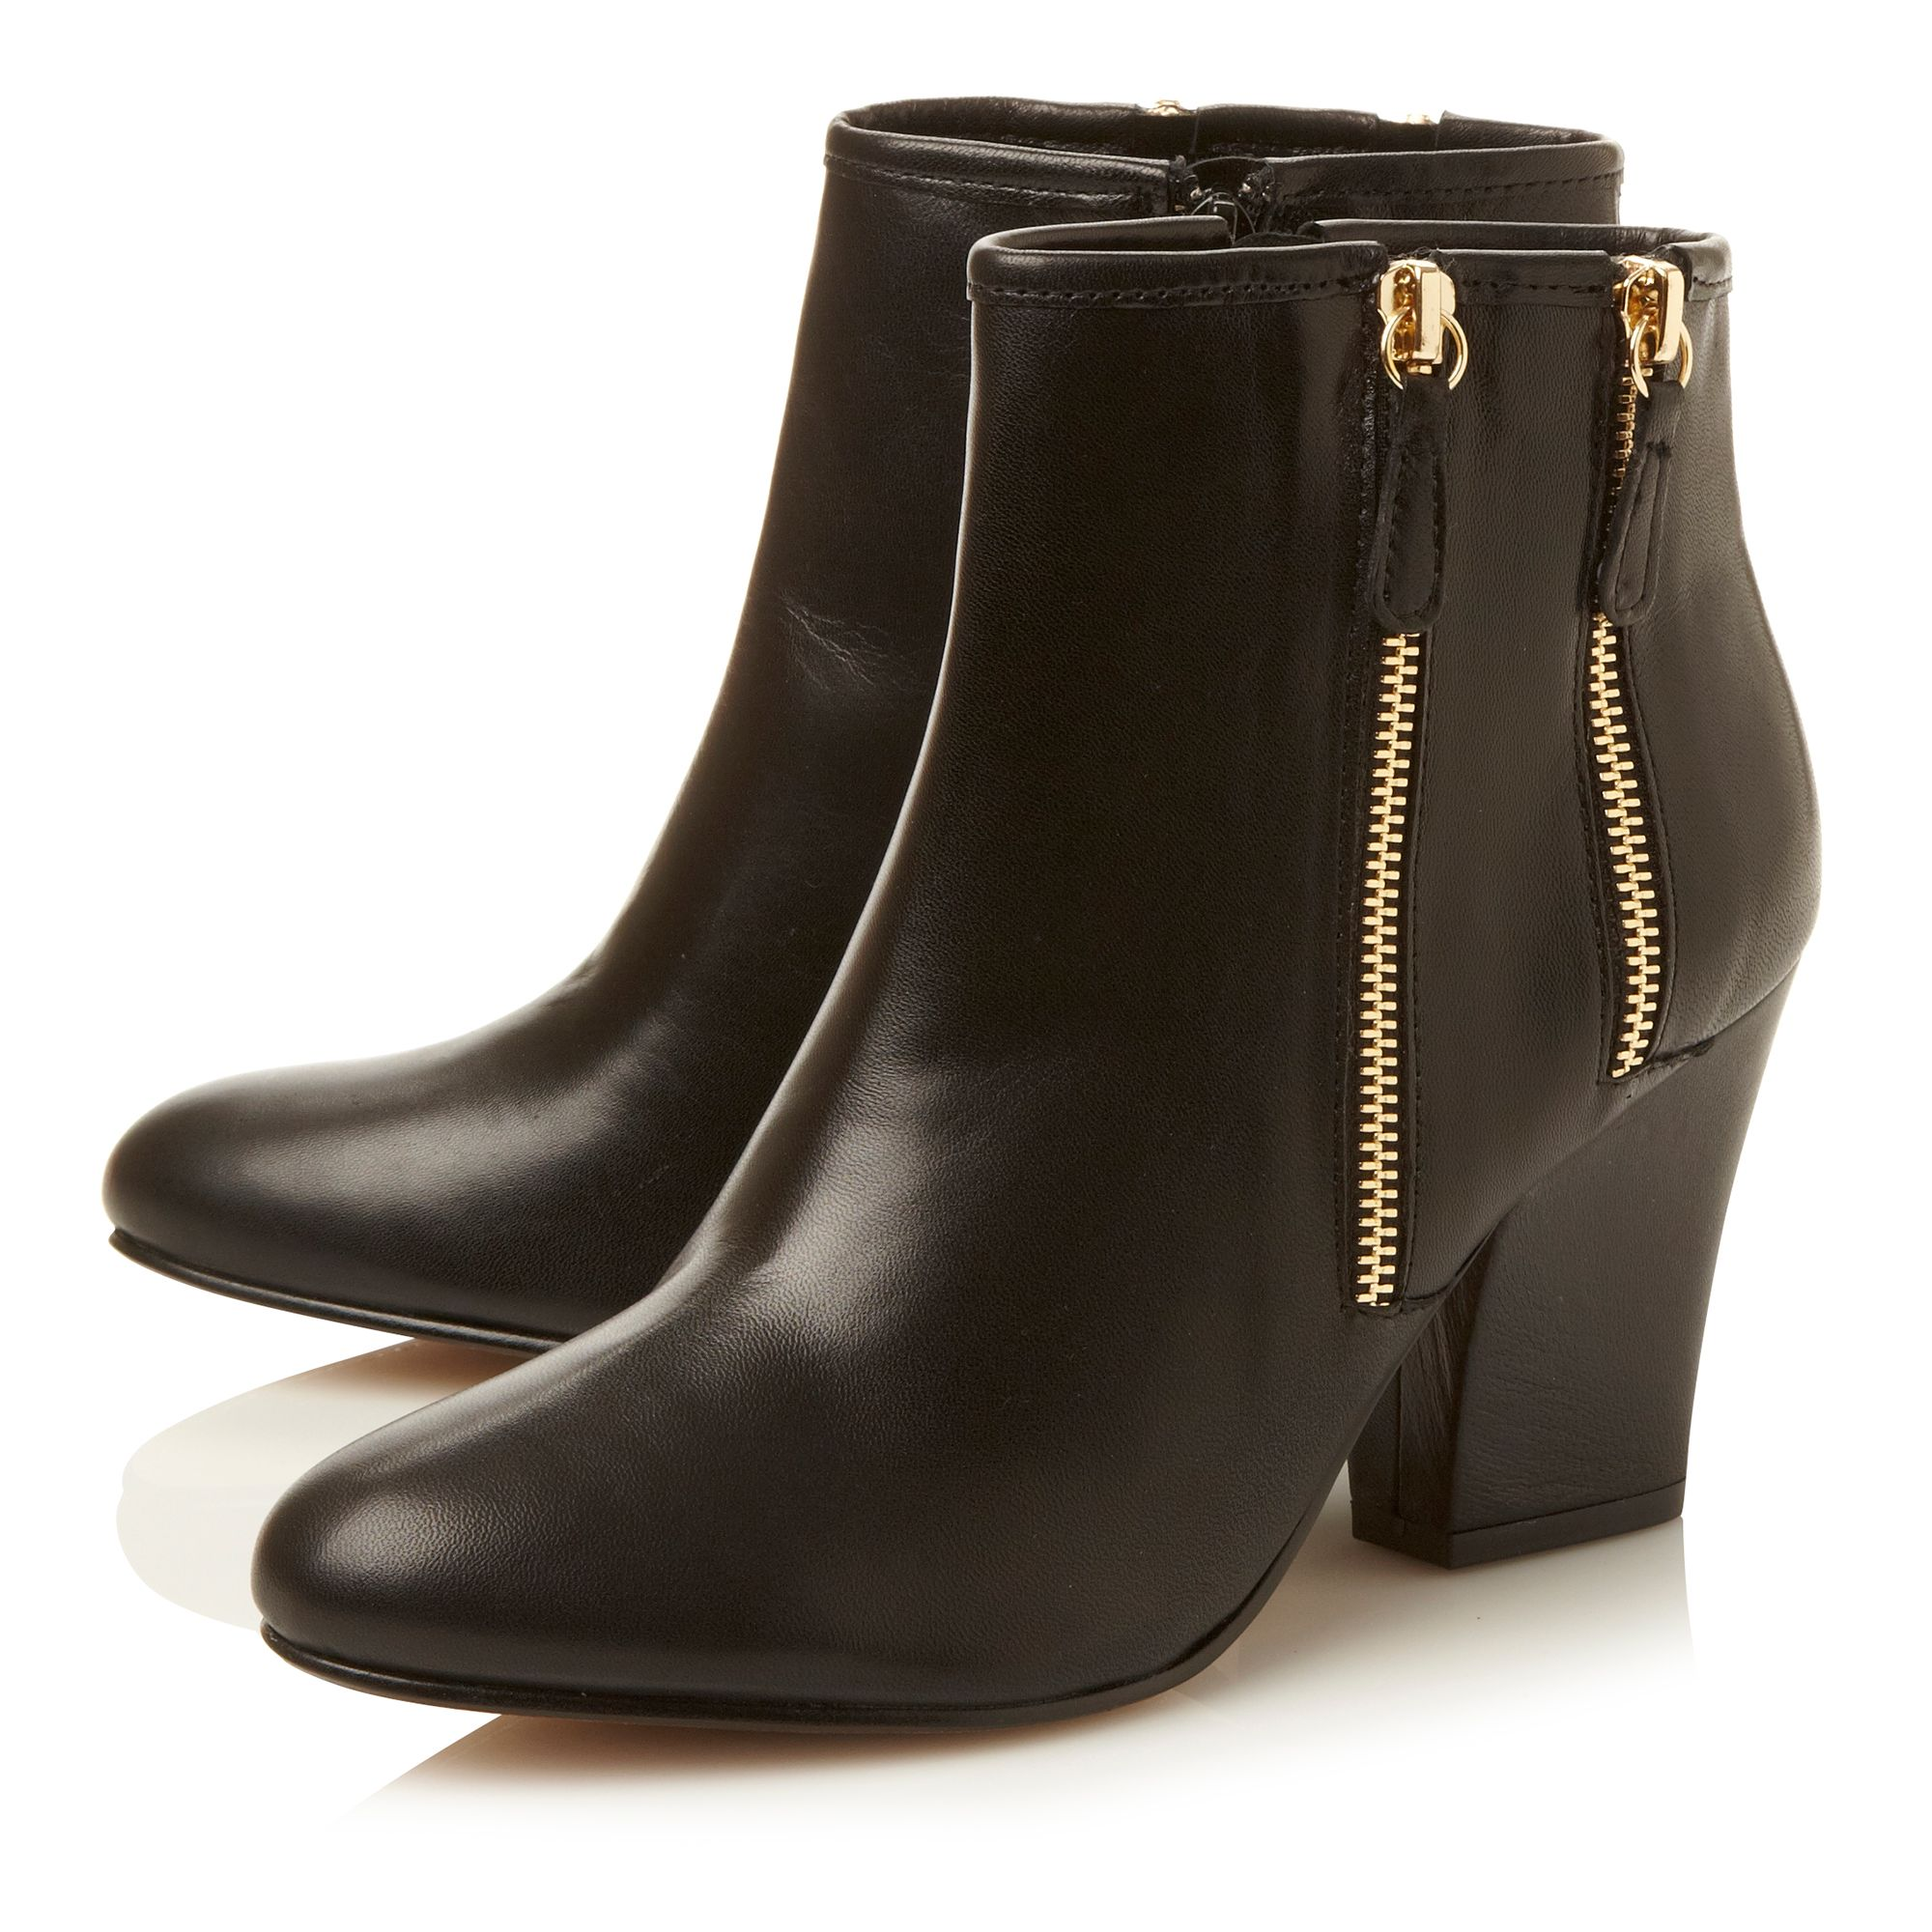 Noras double side zip block heel boots